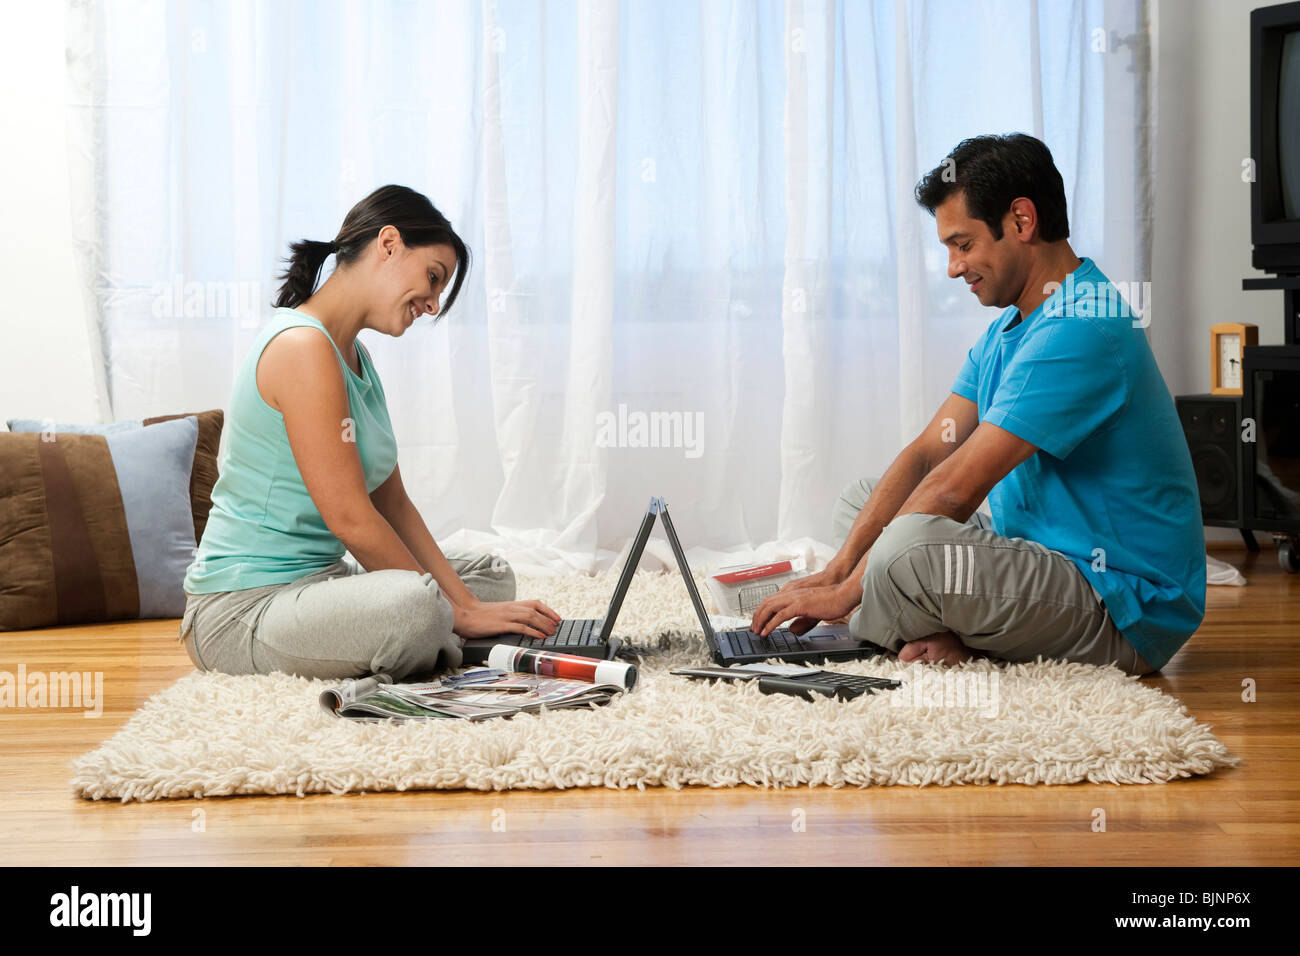 Man and woman lying on carpet with laptops - Stock Image